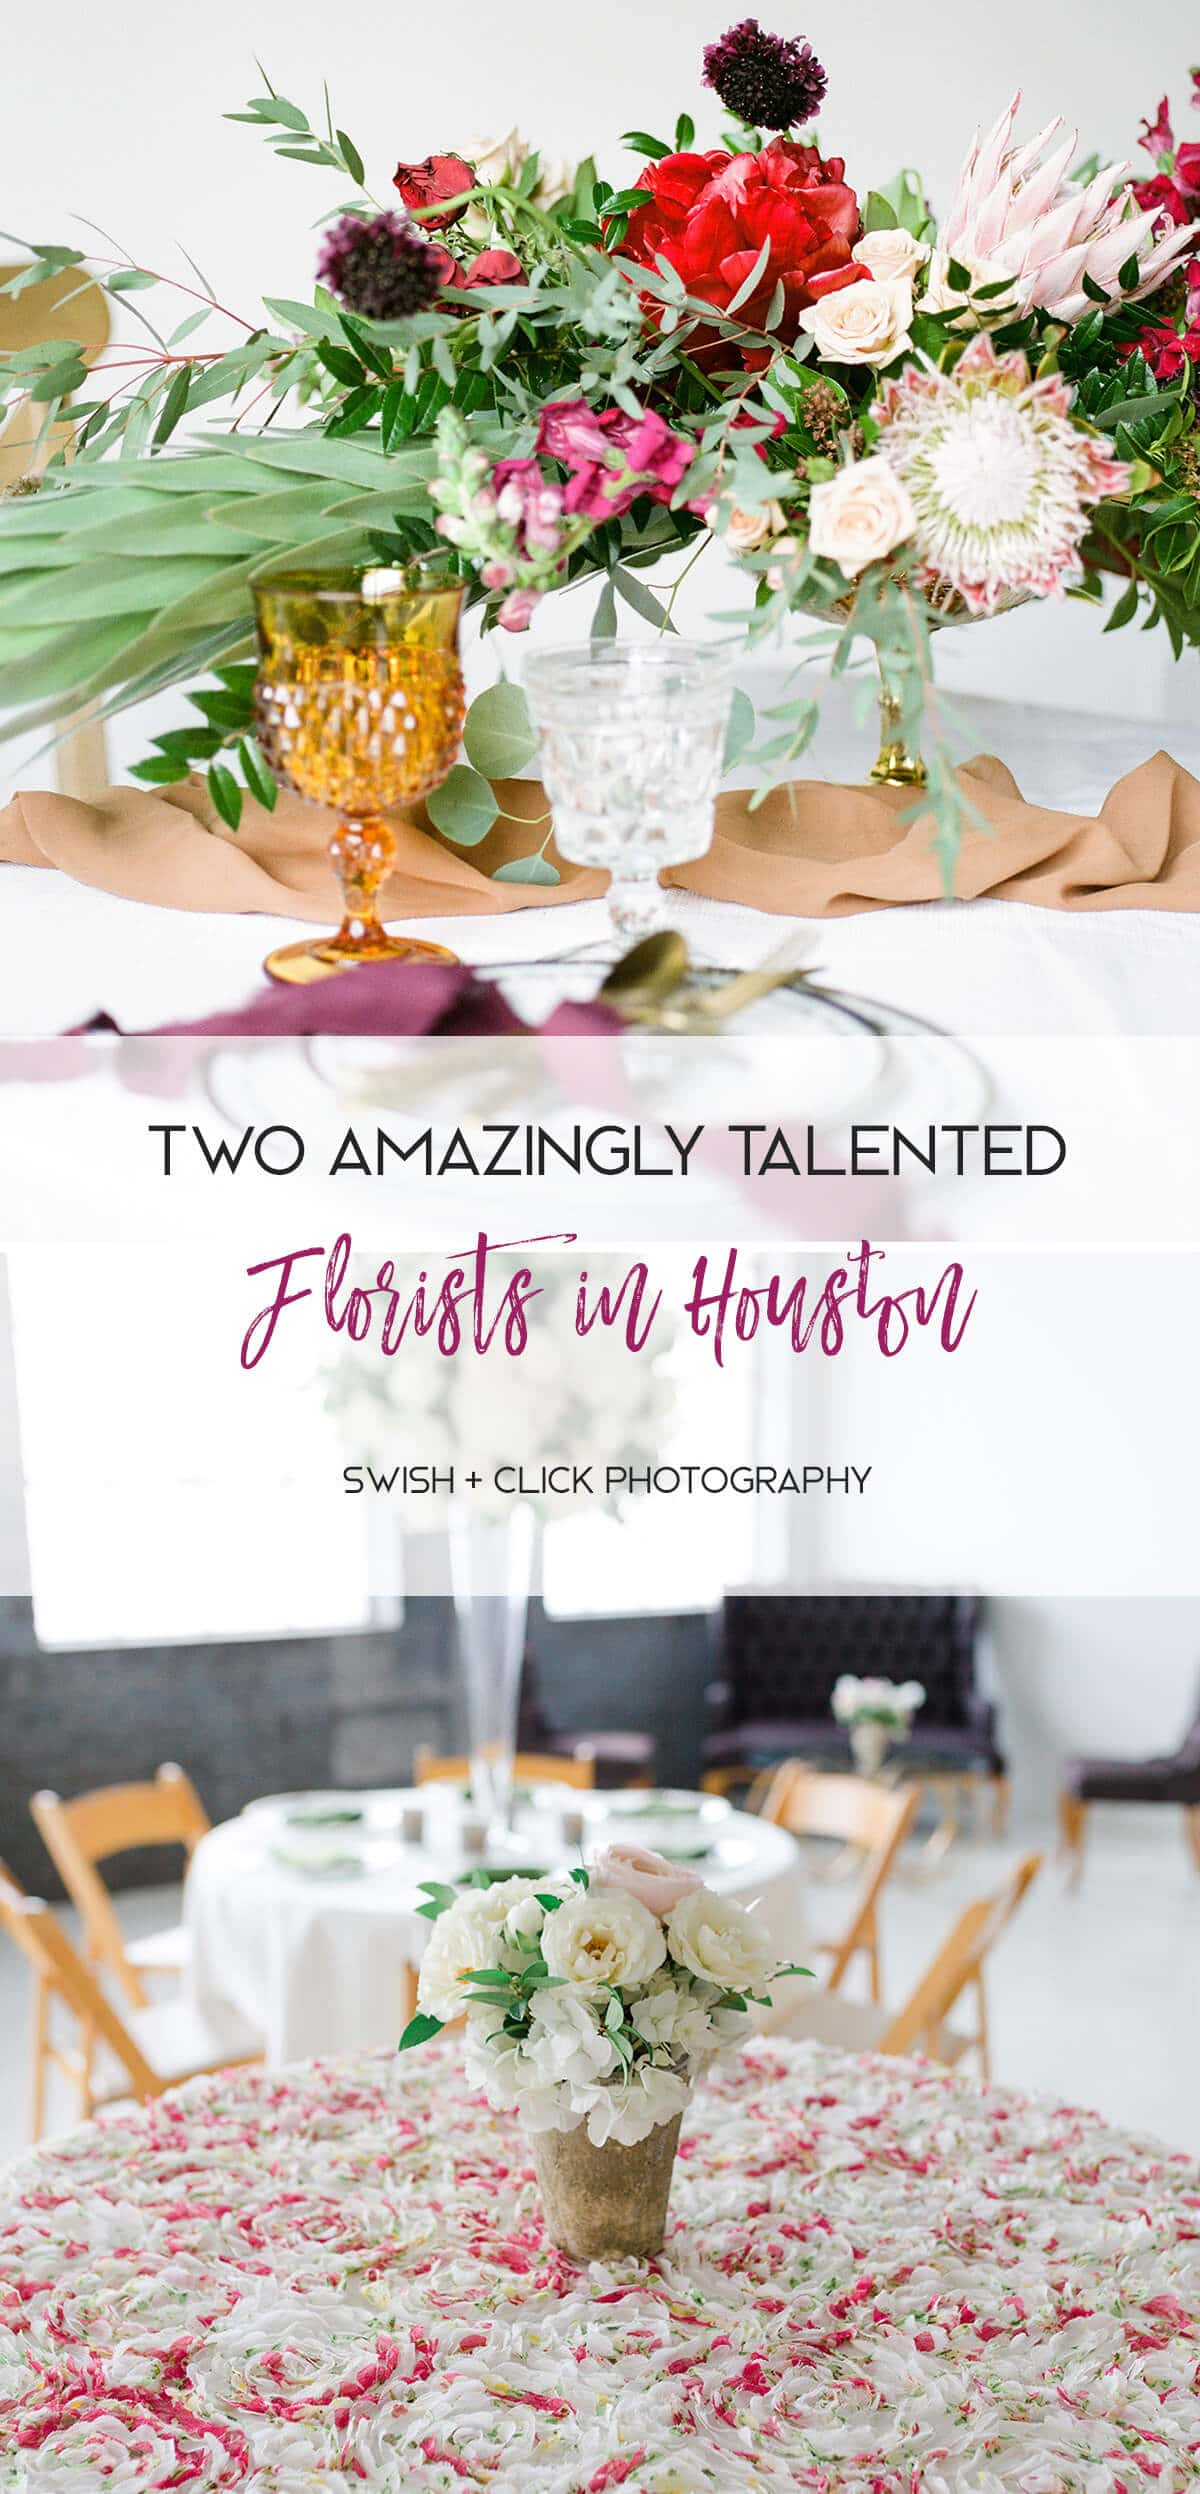 Two Amazingly Talented Florists in Houston